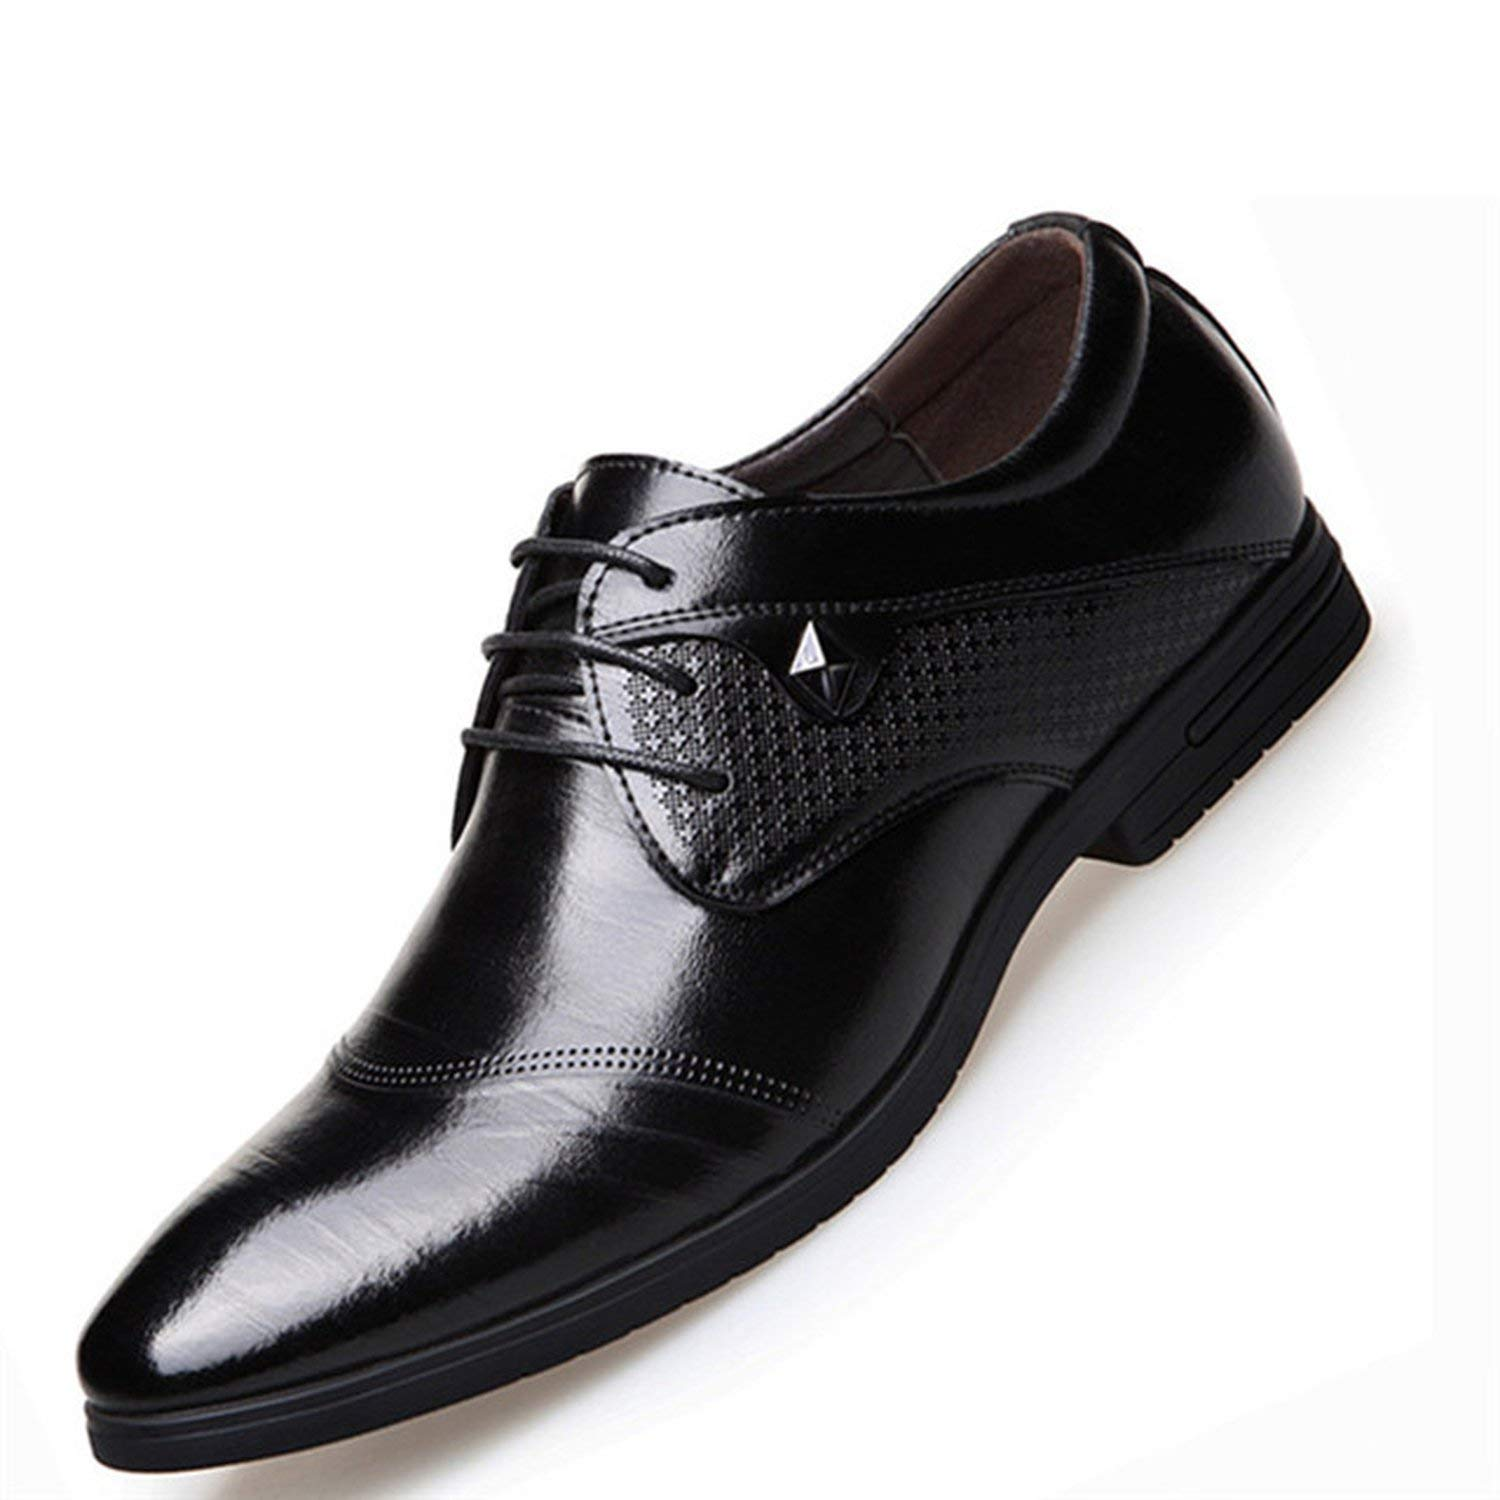 Memoriesed Italian Men Formal Shoes Business Oxfords Men Leather Dress Shoes Pointed Toe,Black Dress Shoes,6